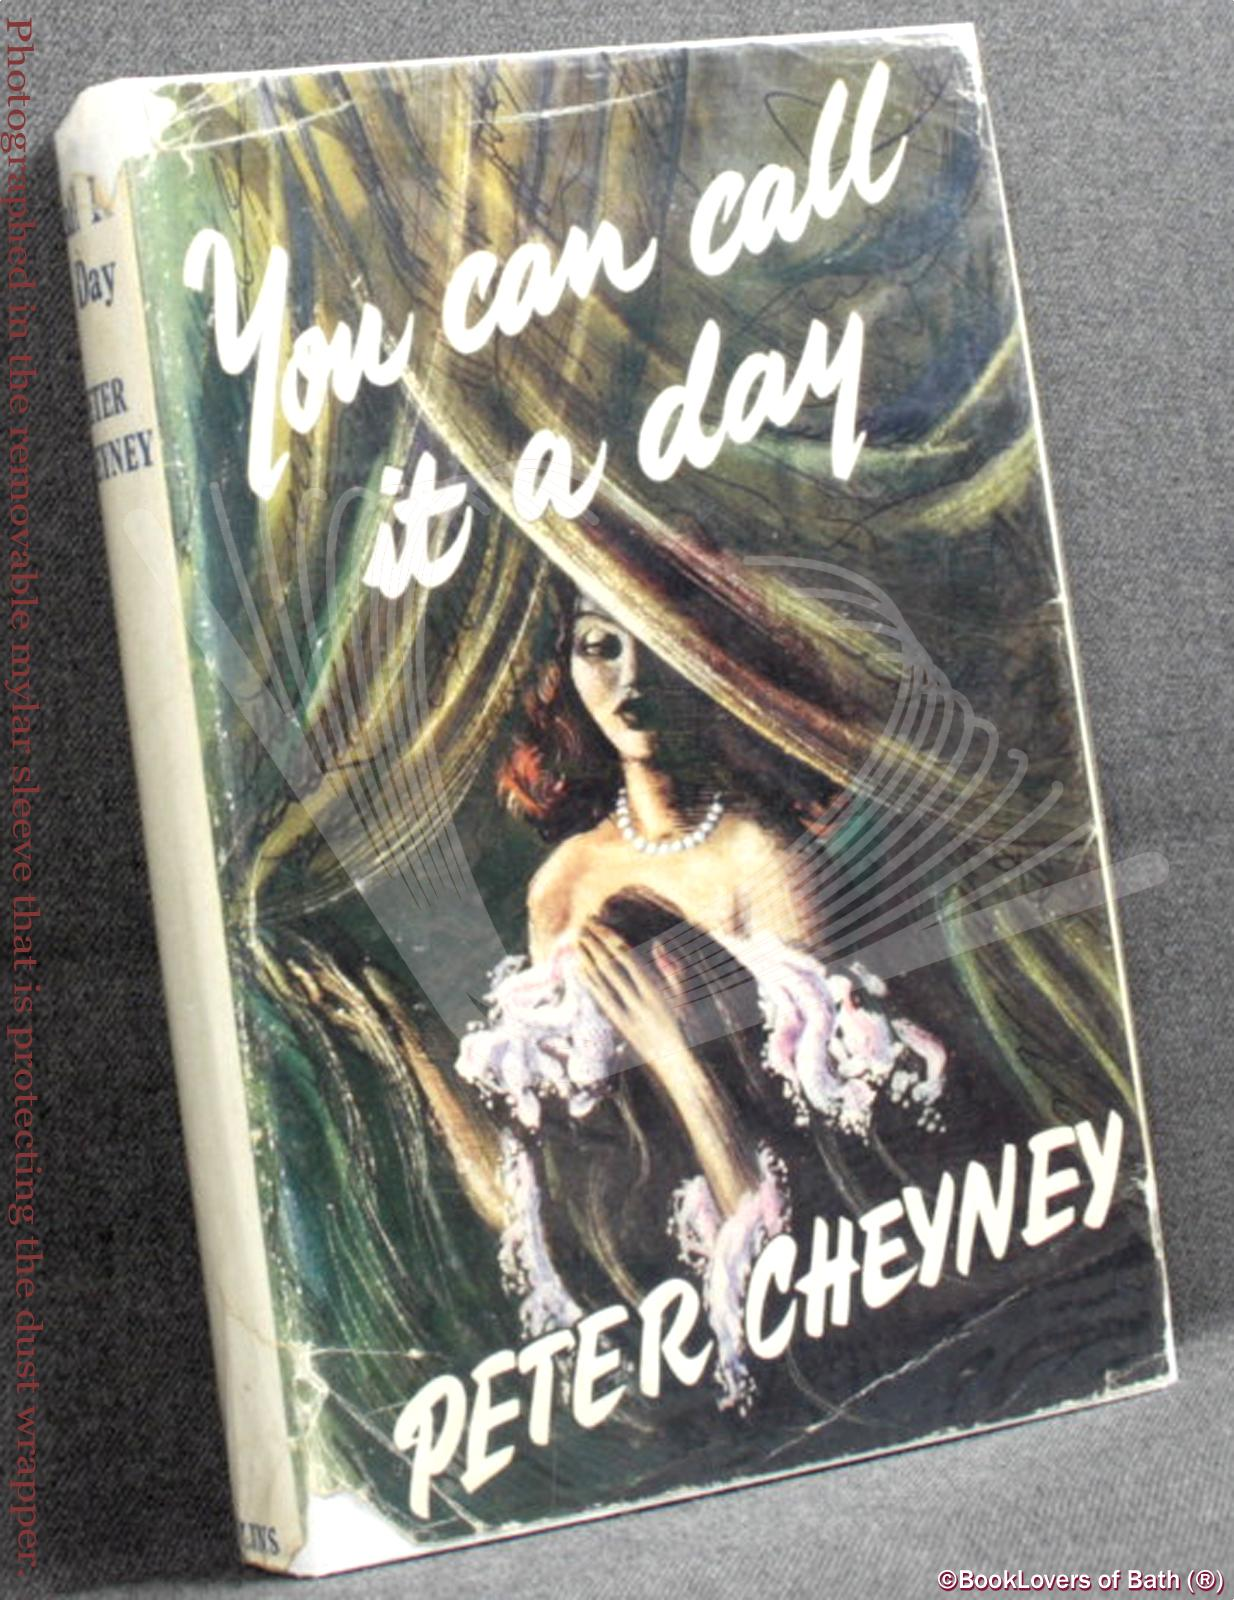 You Can Call It A Day - Peter Cheyney